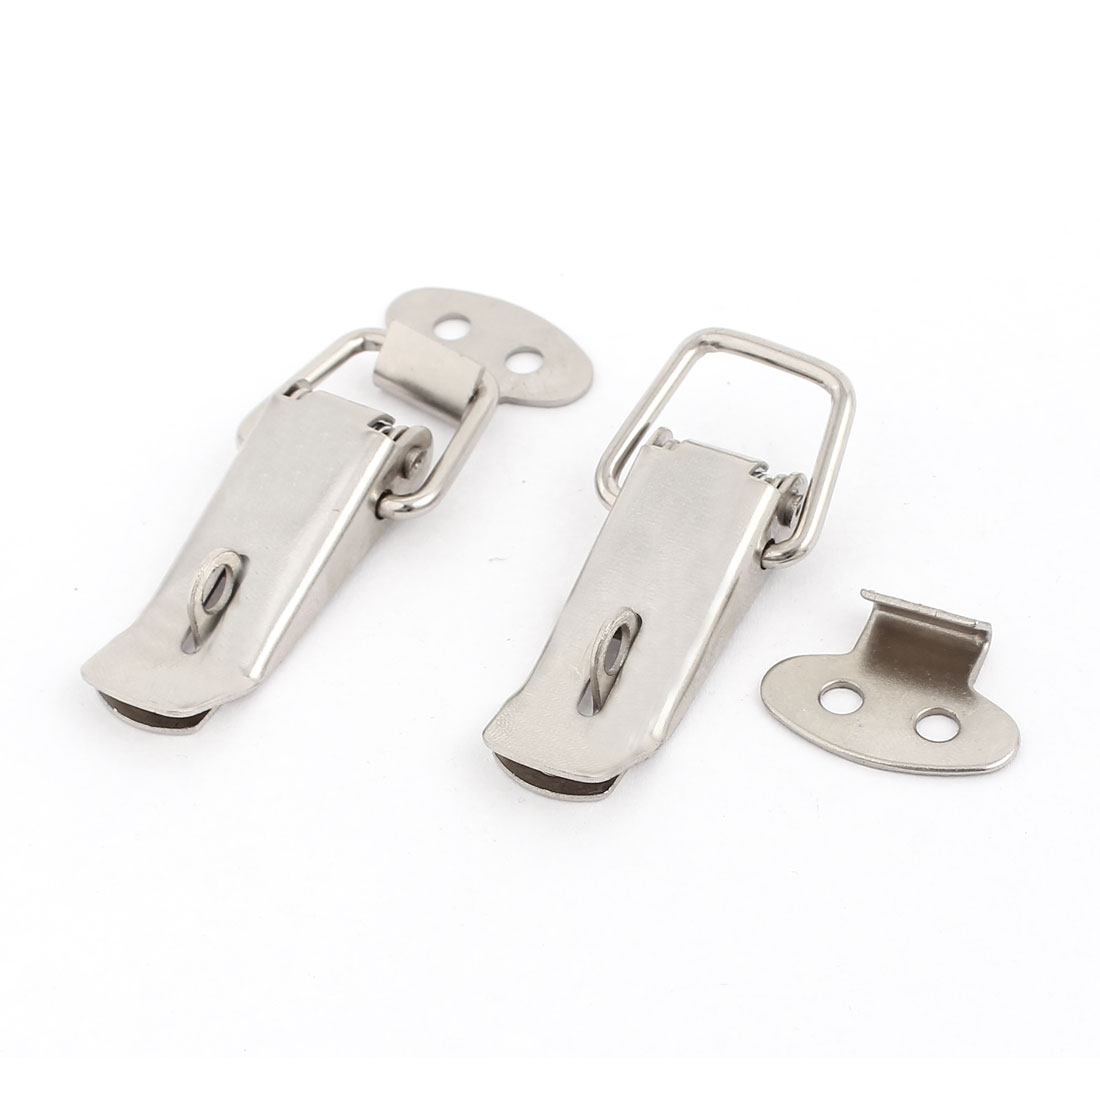 Suitcase Bags Cases Stainless Steel Spring Draw Toggle Latch Catch 2Pcs